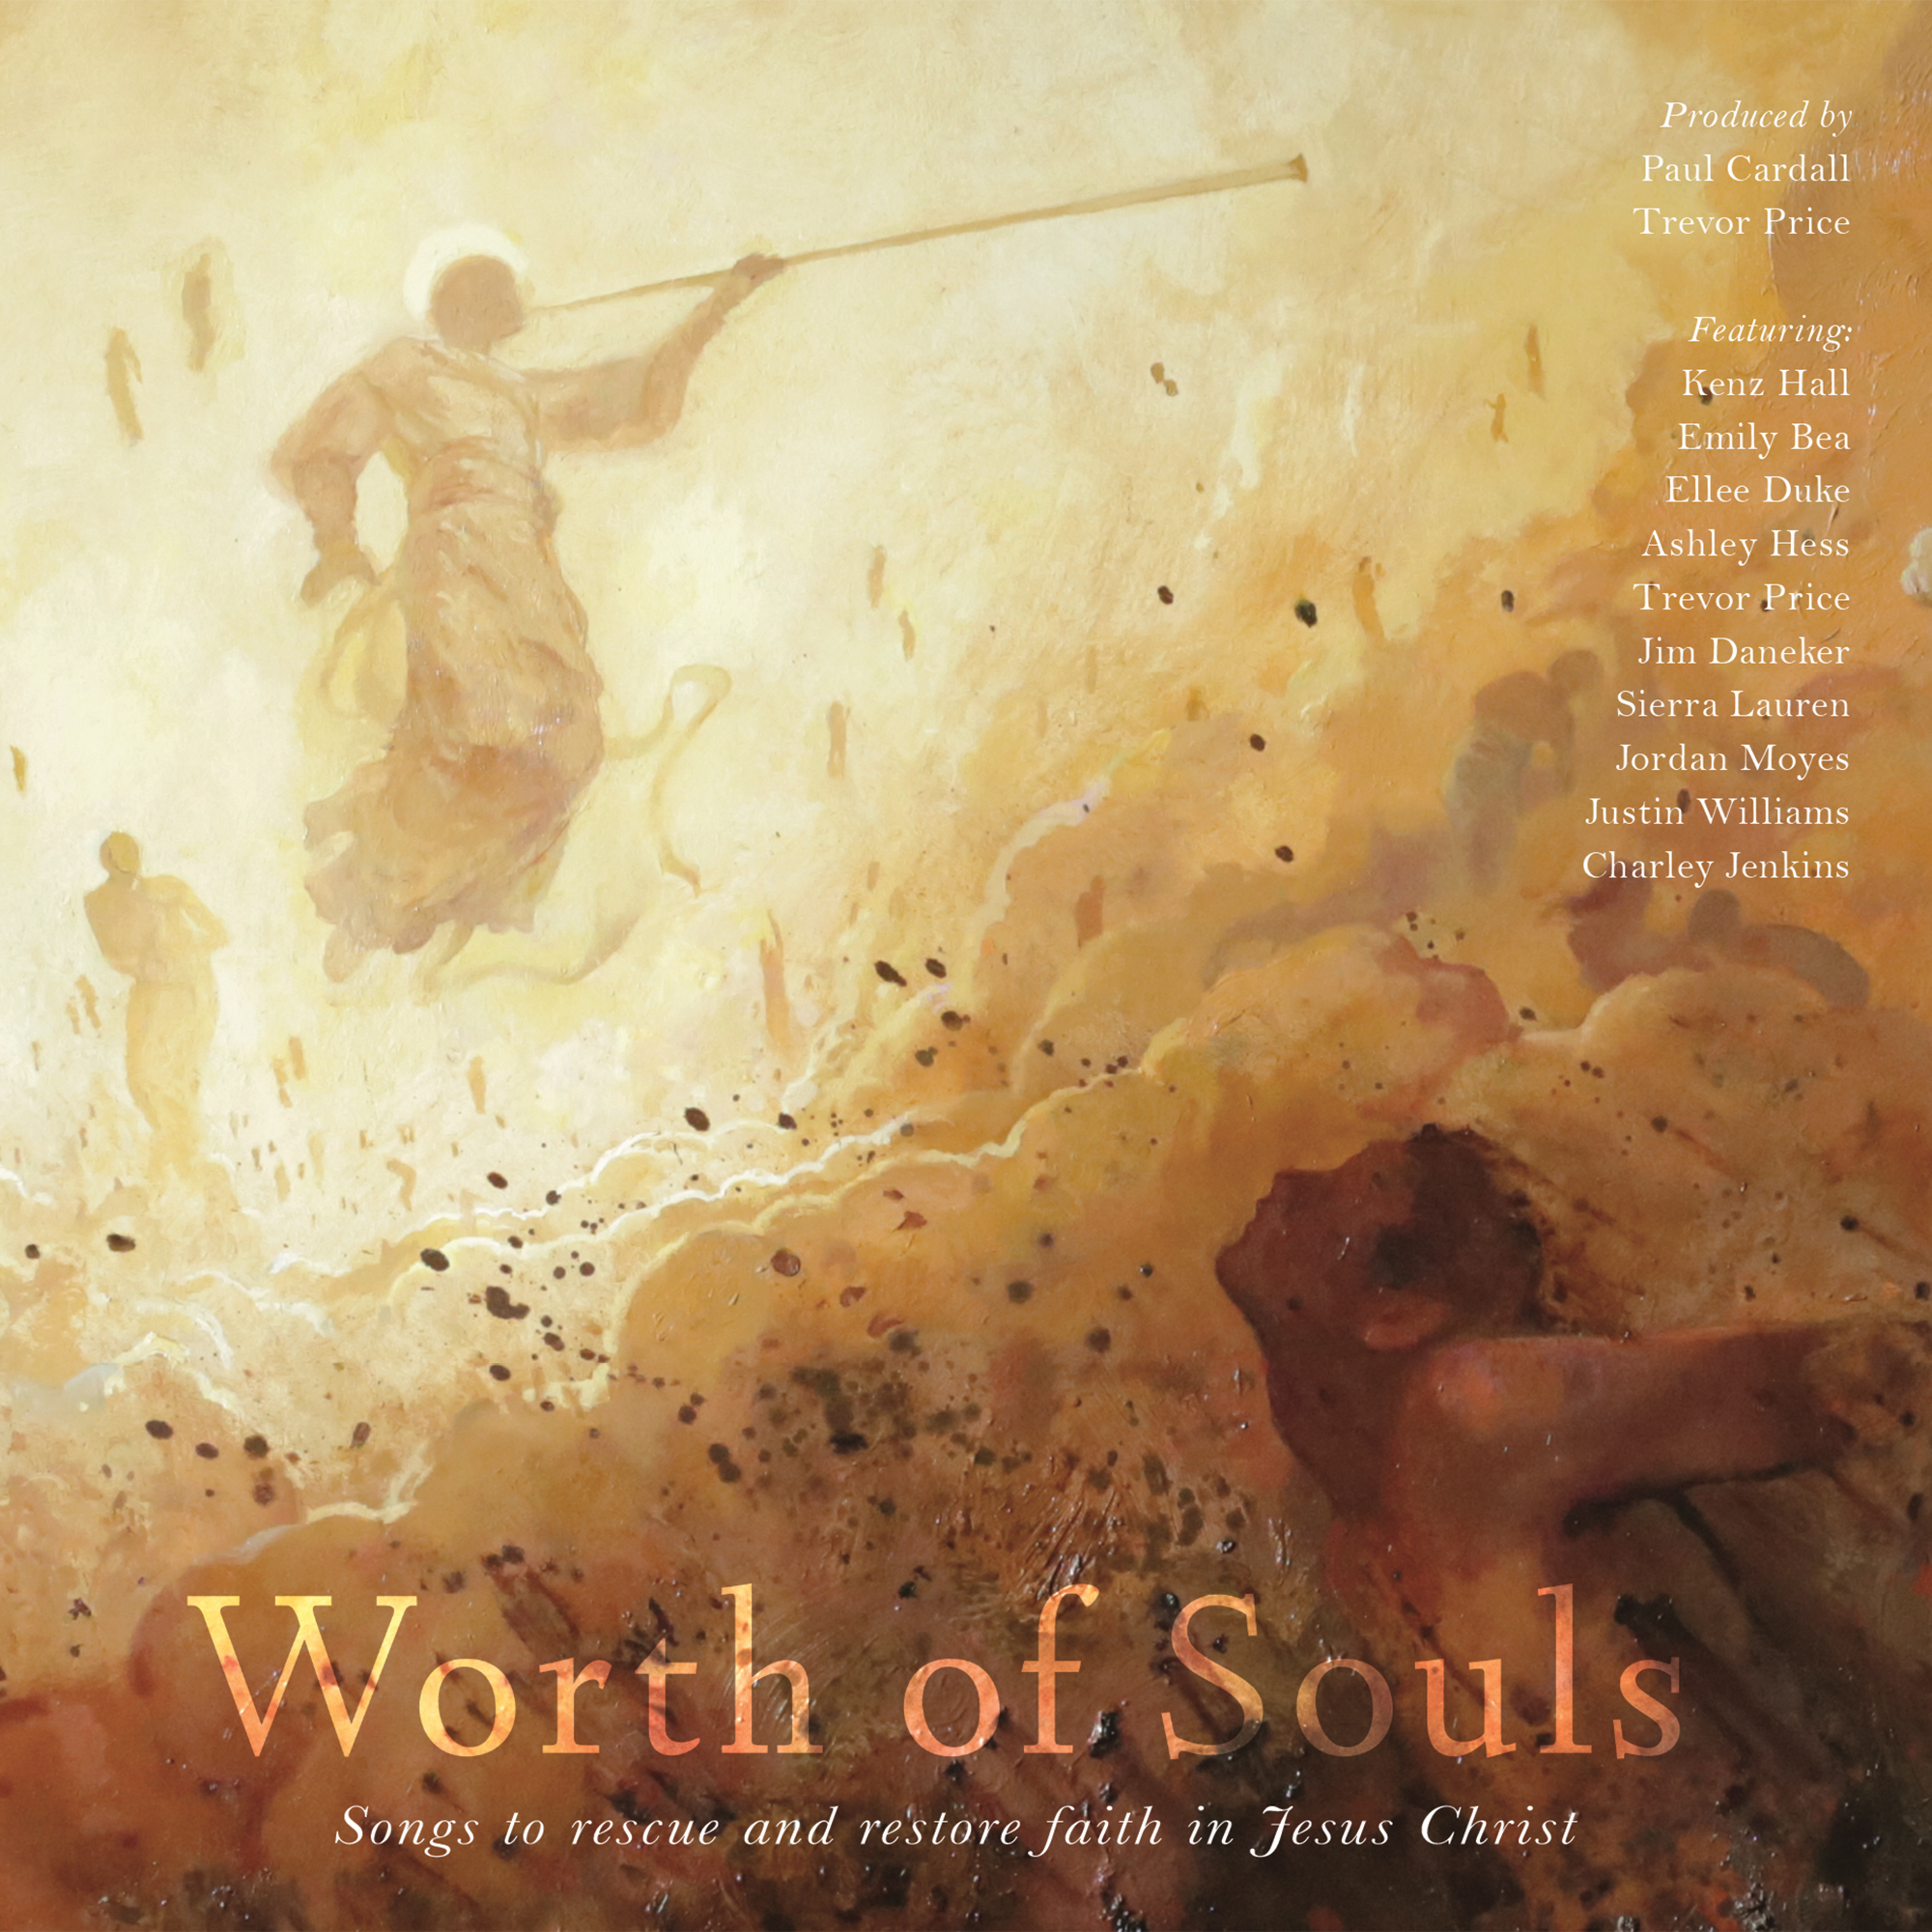 Christian artists come together for the 'Worth of Souls